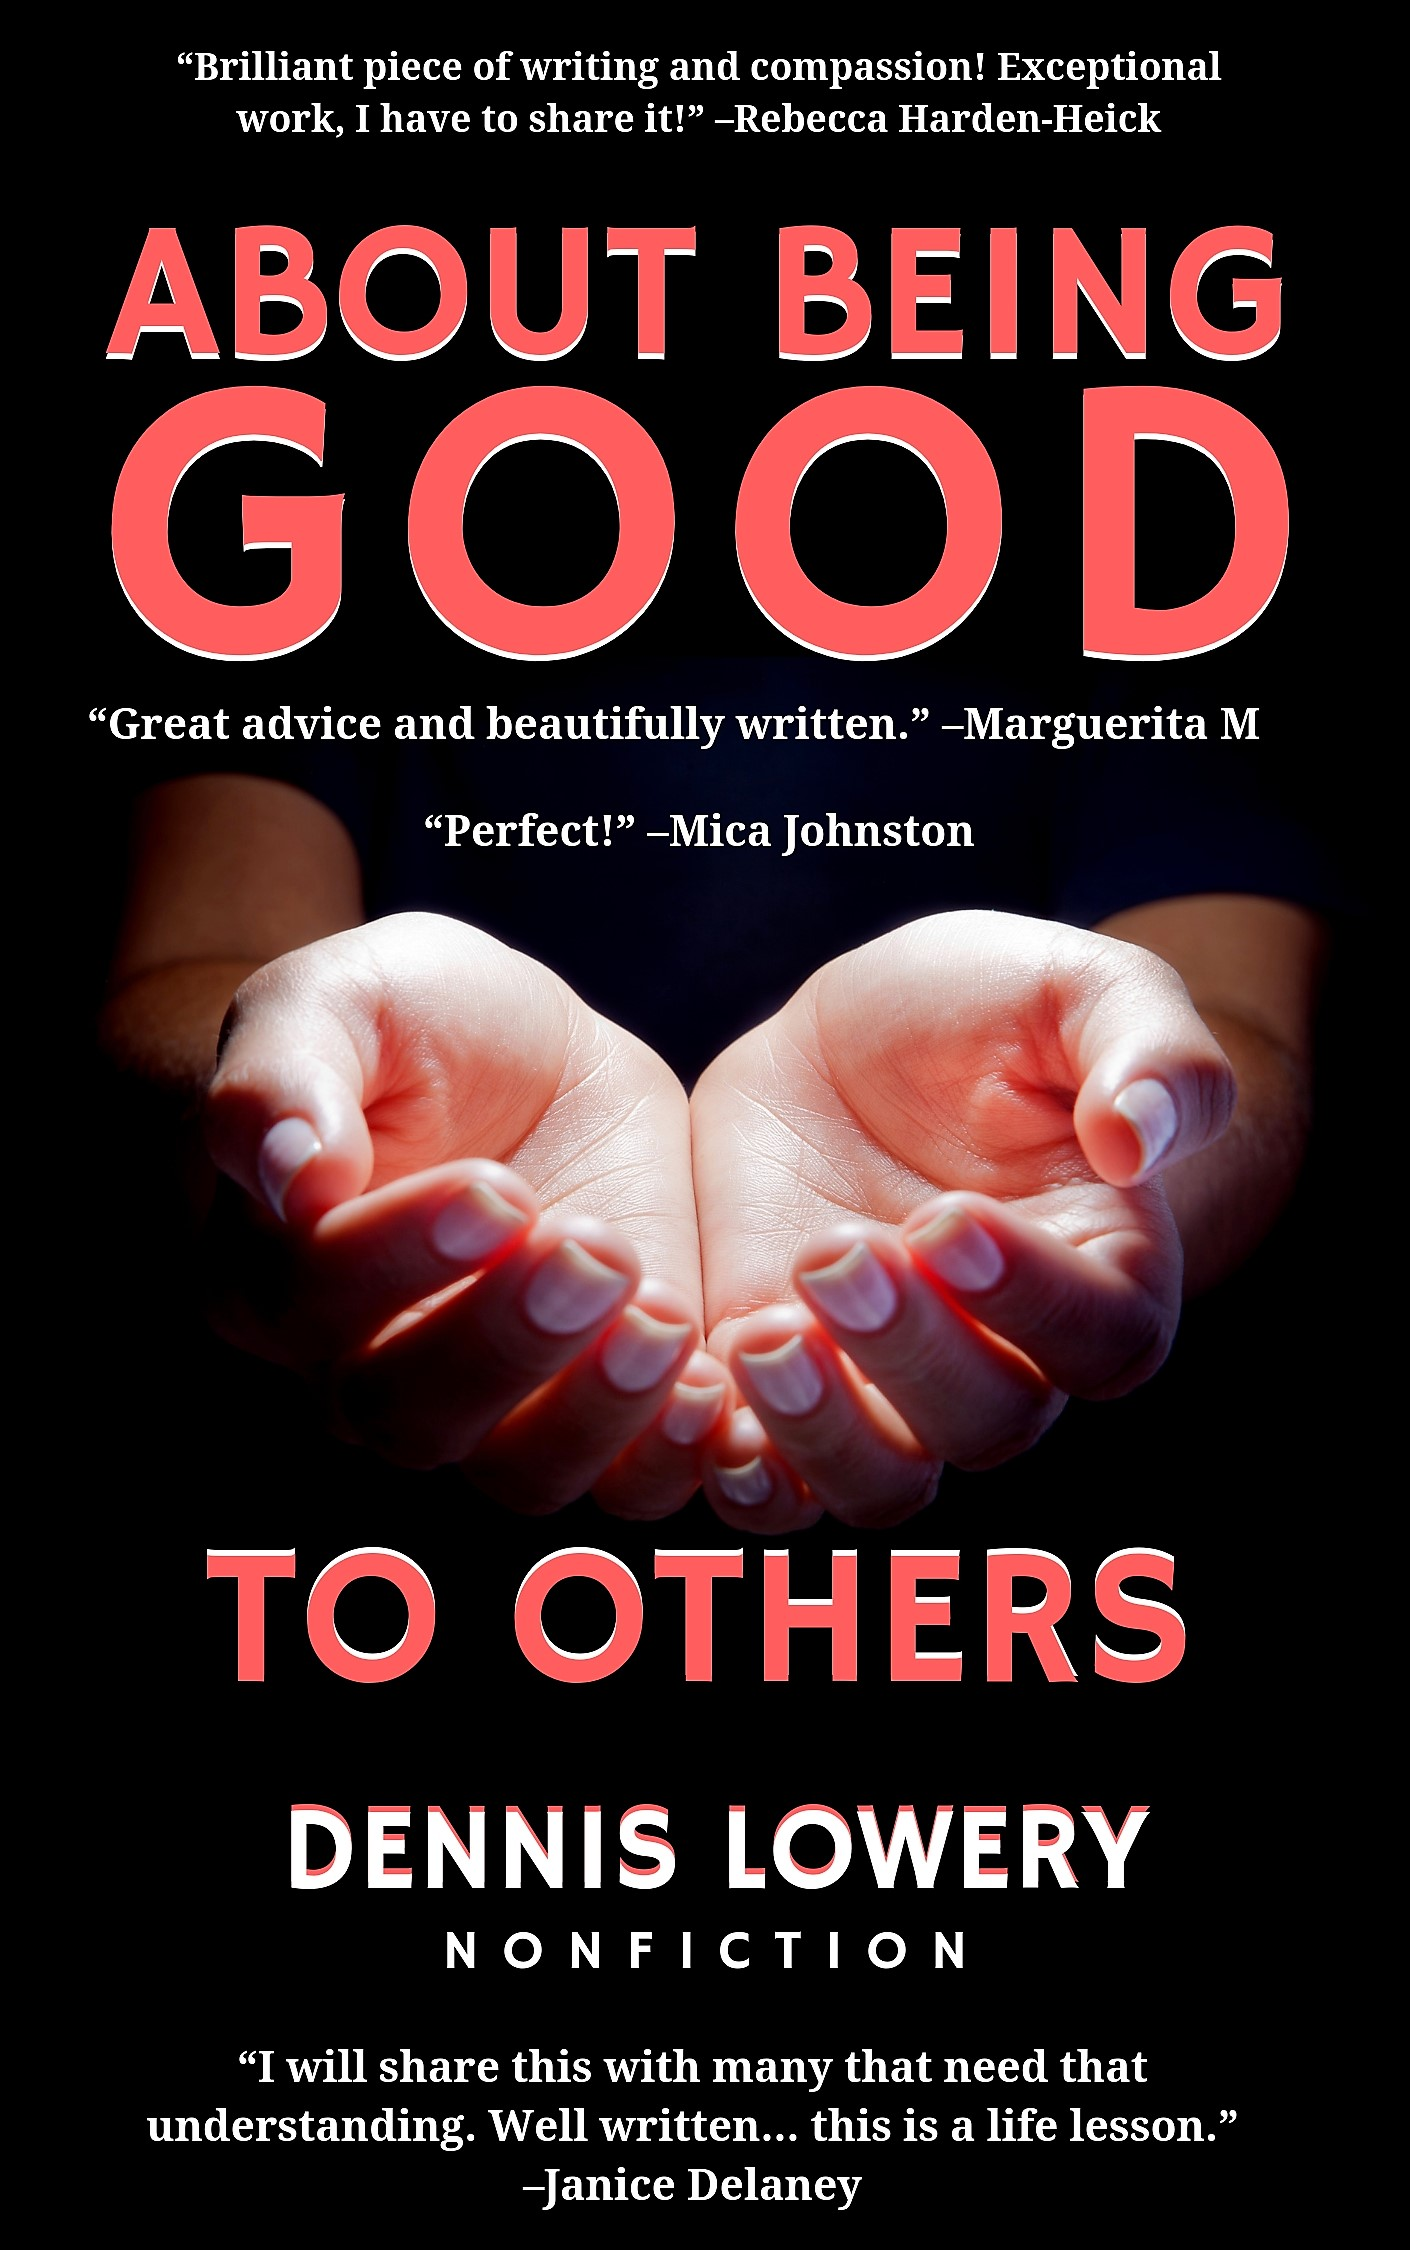 About Being Good... to Others - Dennis Lowery